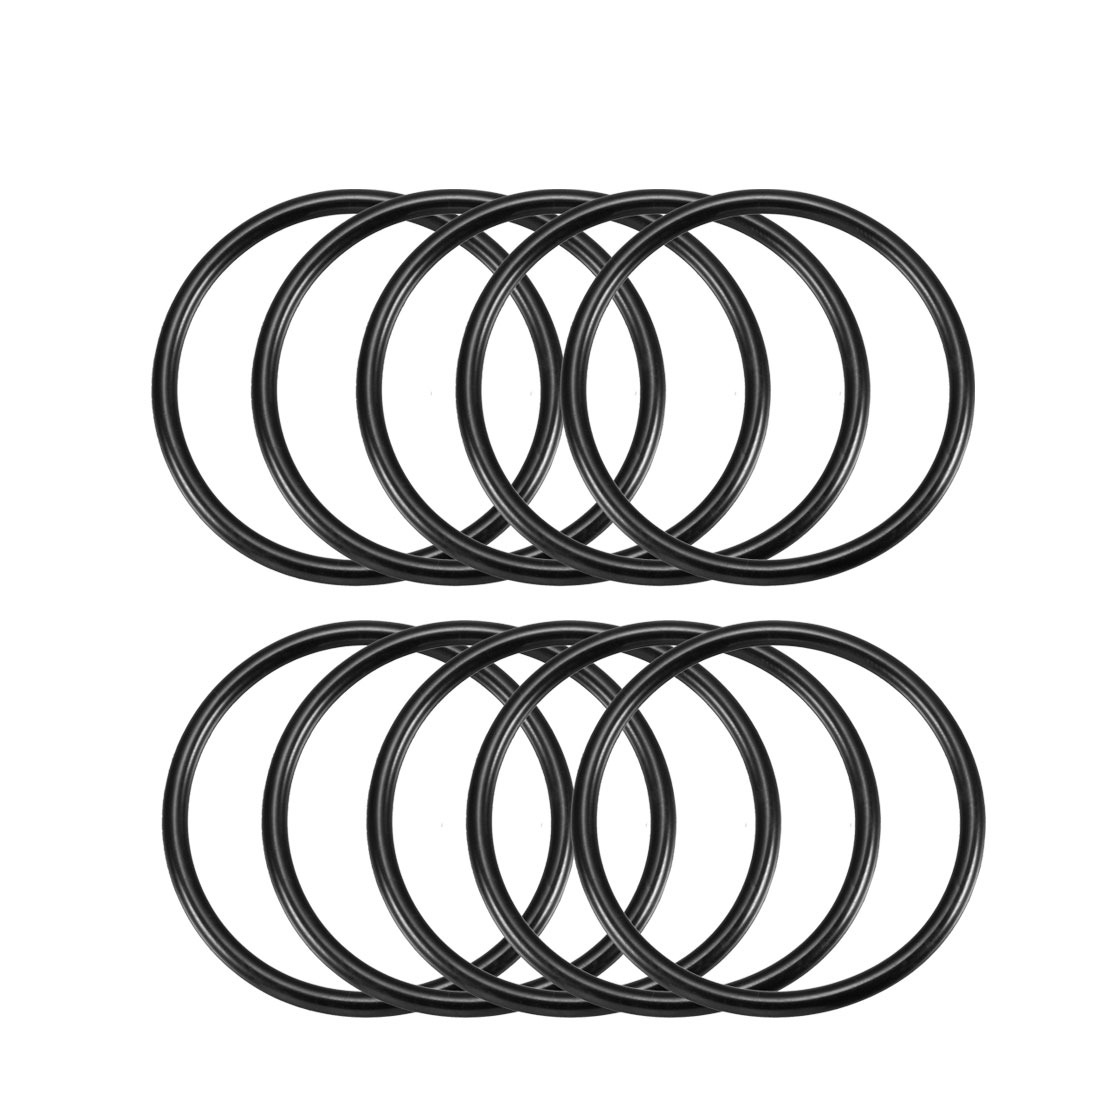 10 Pcs Metric O Rings Black Nitrile Rubber 55mm OD 3.5mm Thick